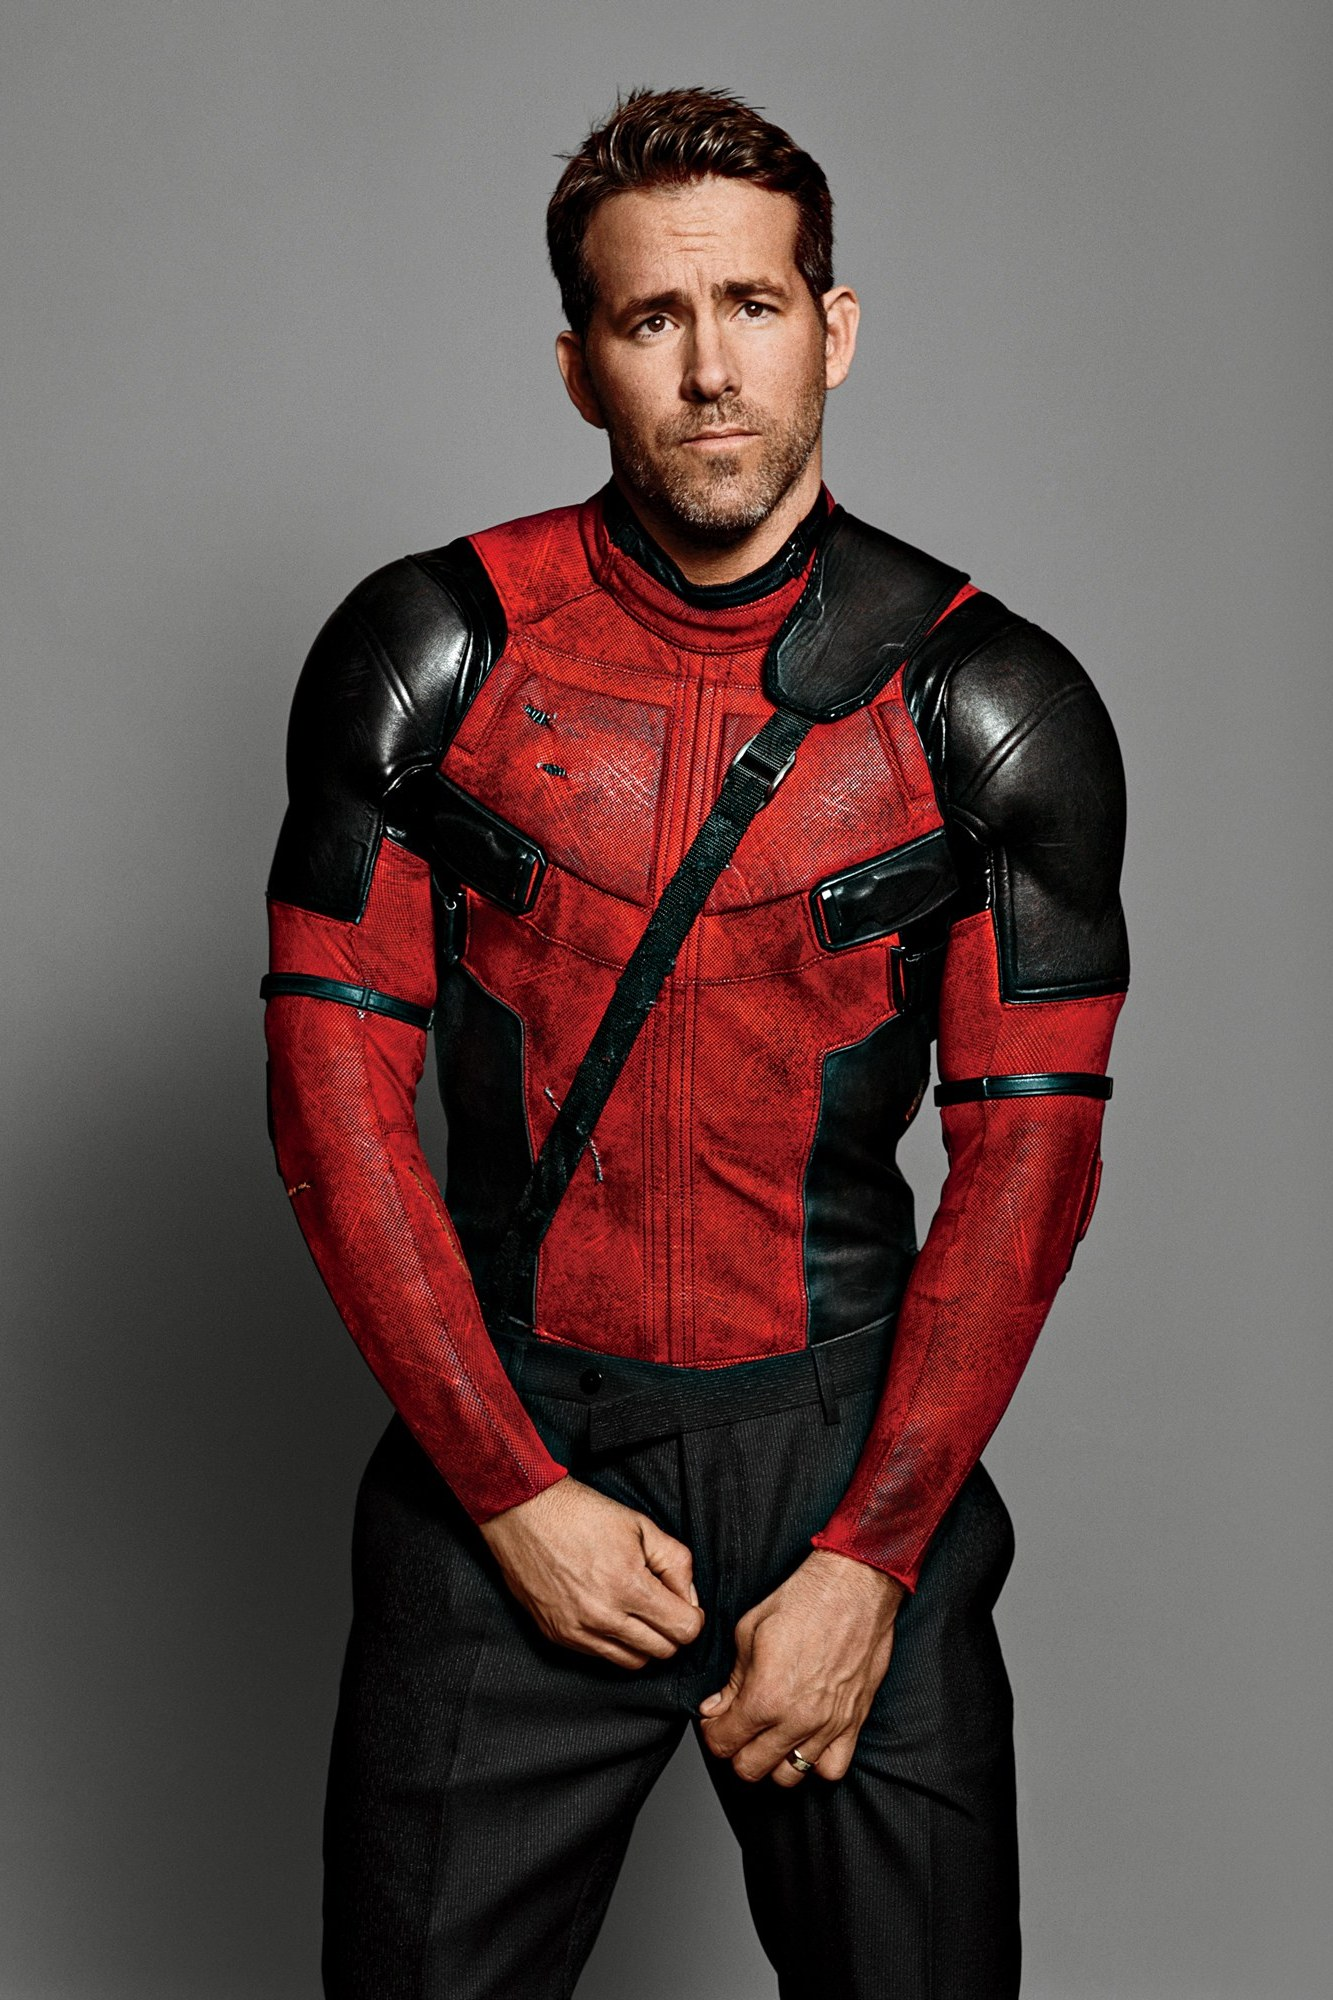 reynolds ryan man portrait deadpool  costume actor photosession